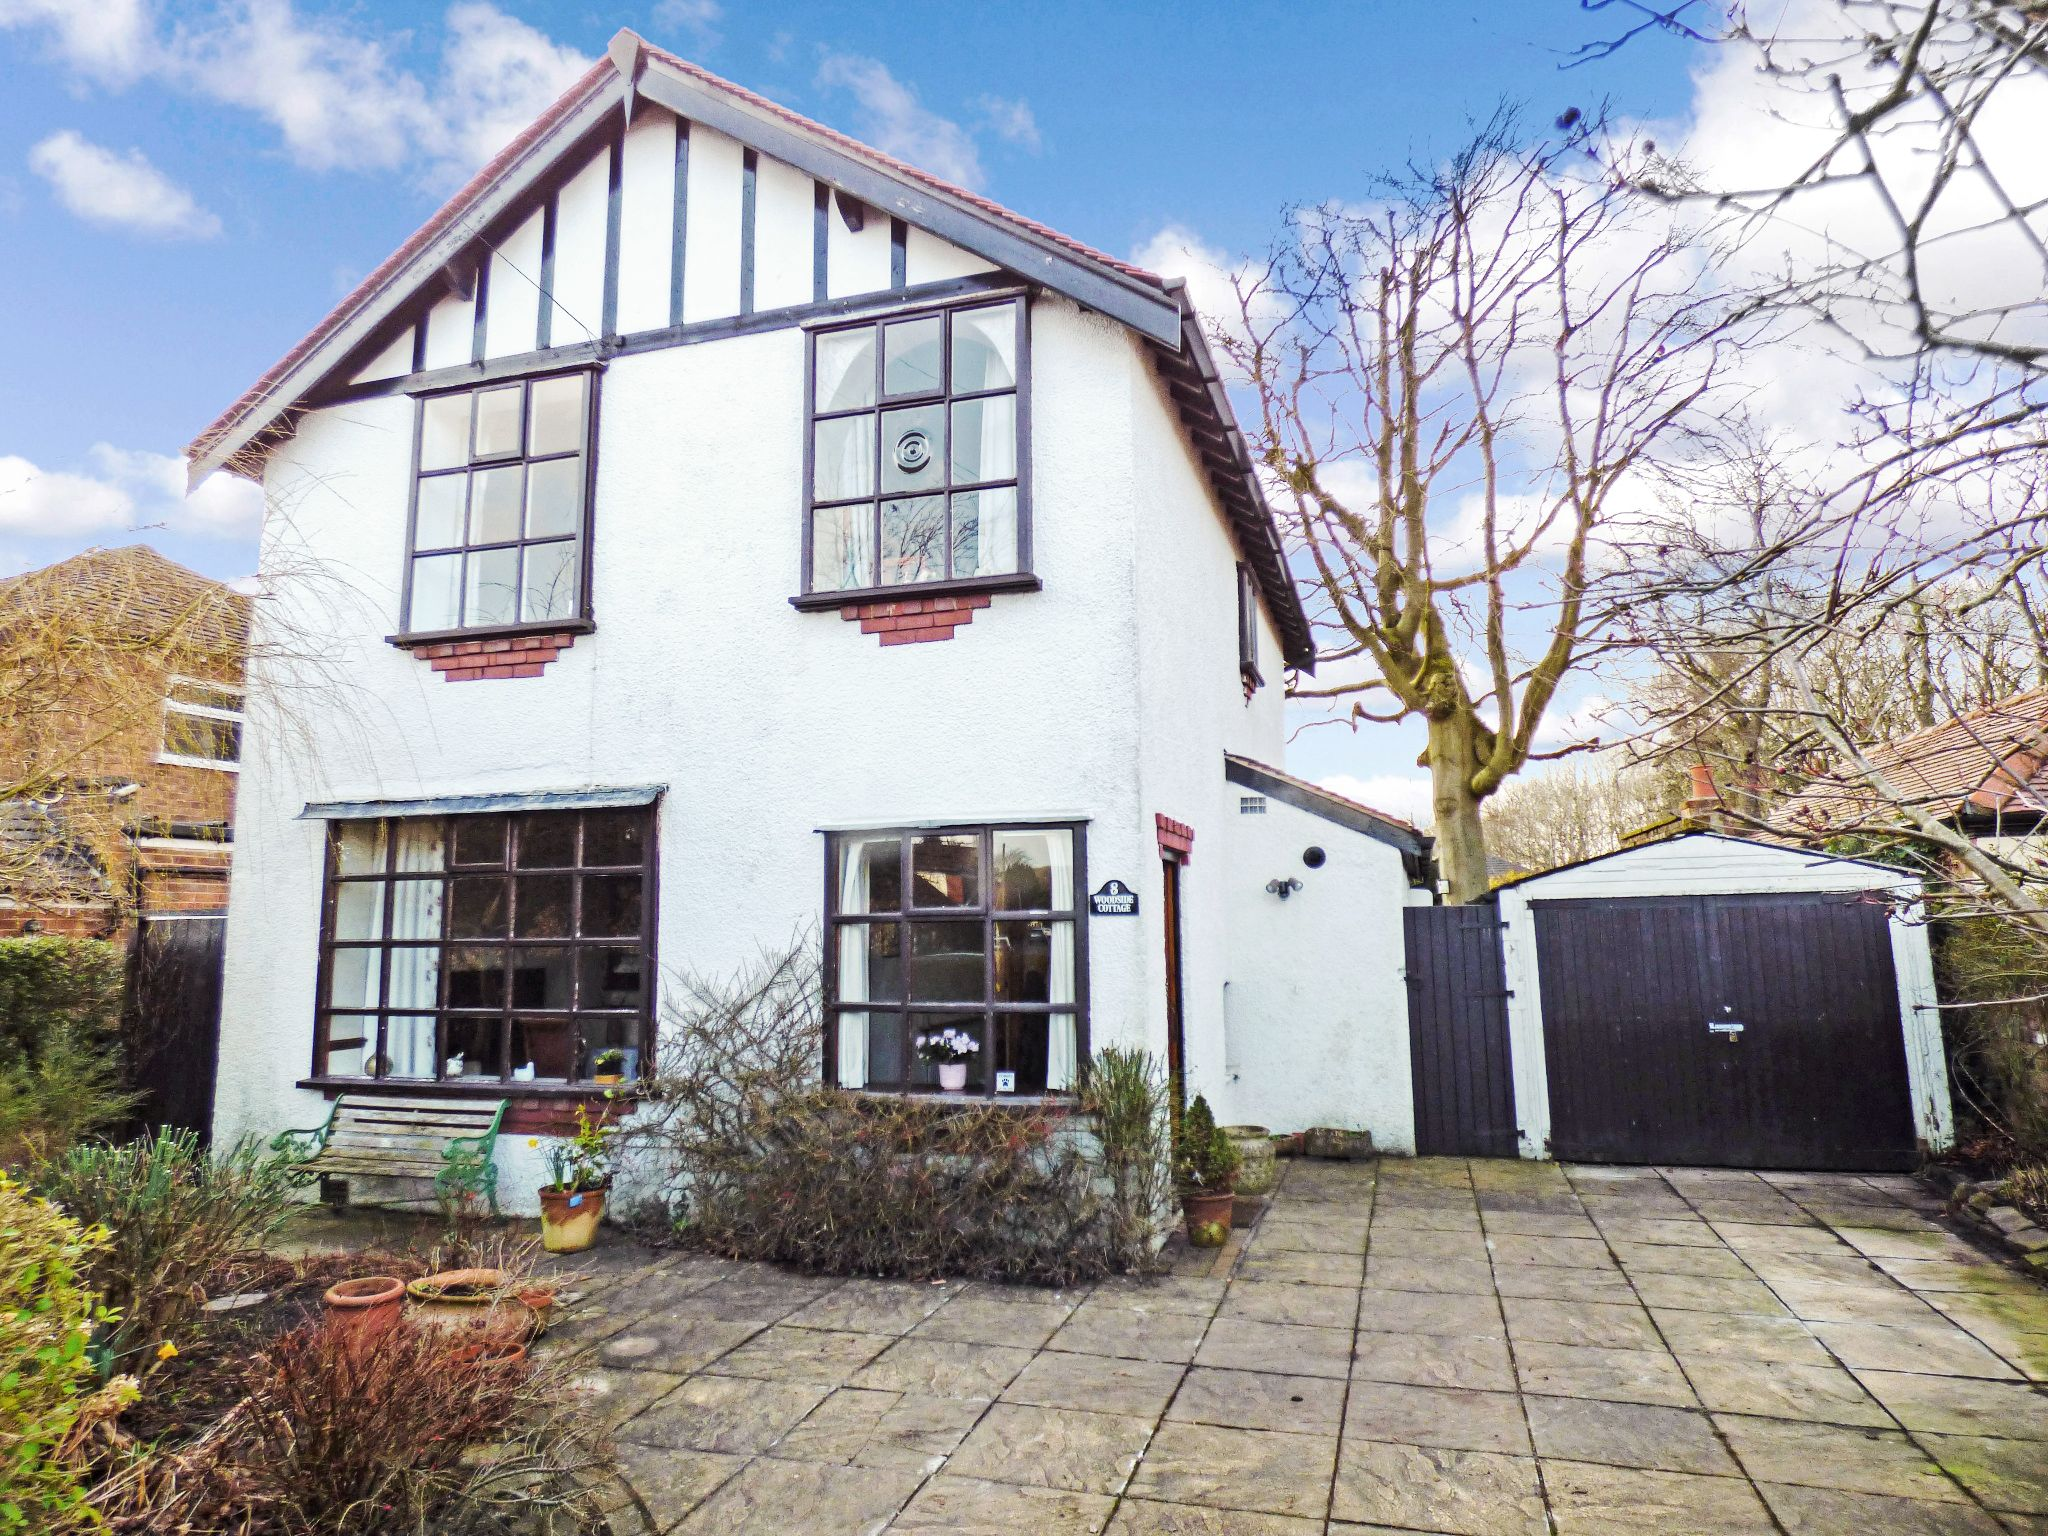 3 Bedroom Detached House For Sale - Front External